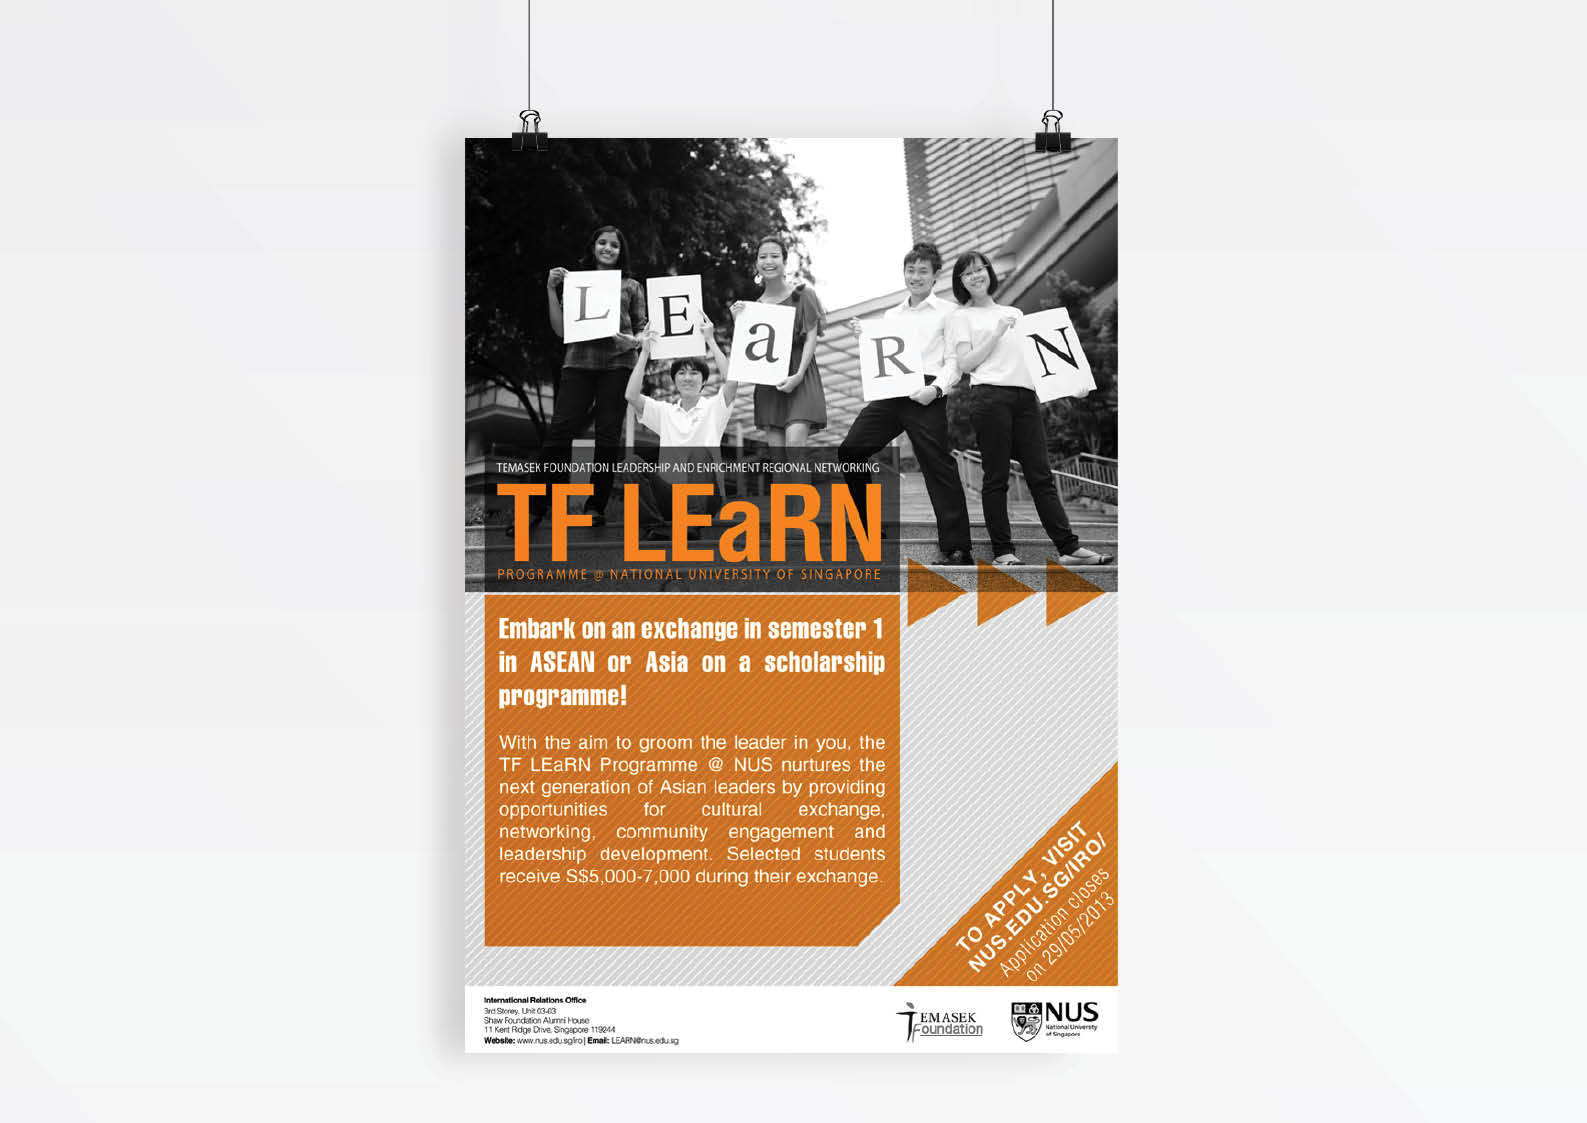 TF LEaRN Programme @ NUS - design collaterals - asianurbanist